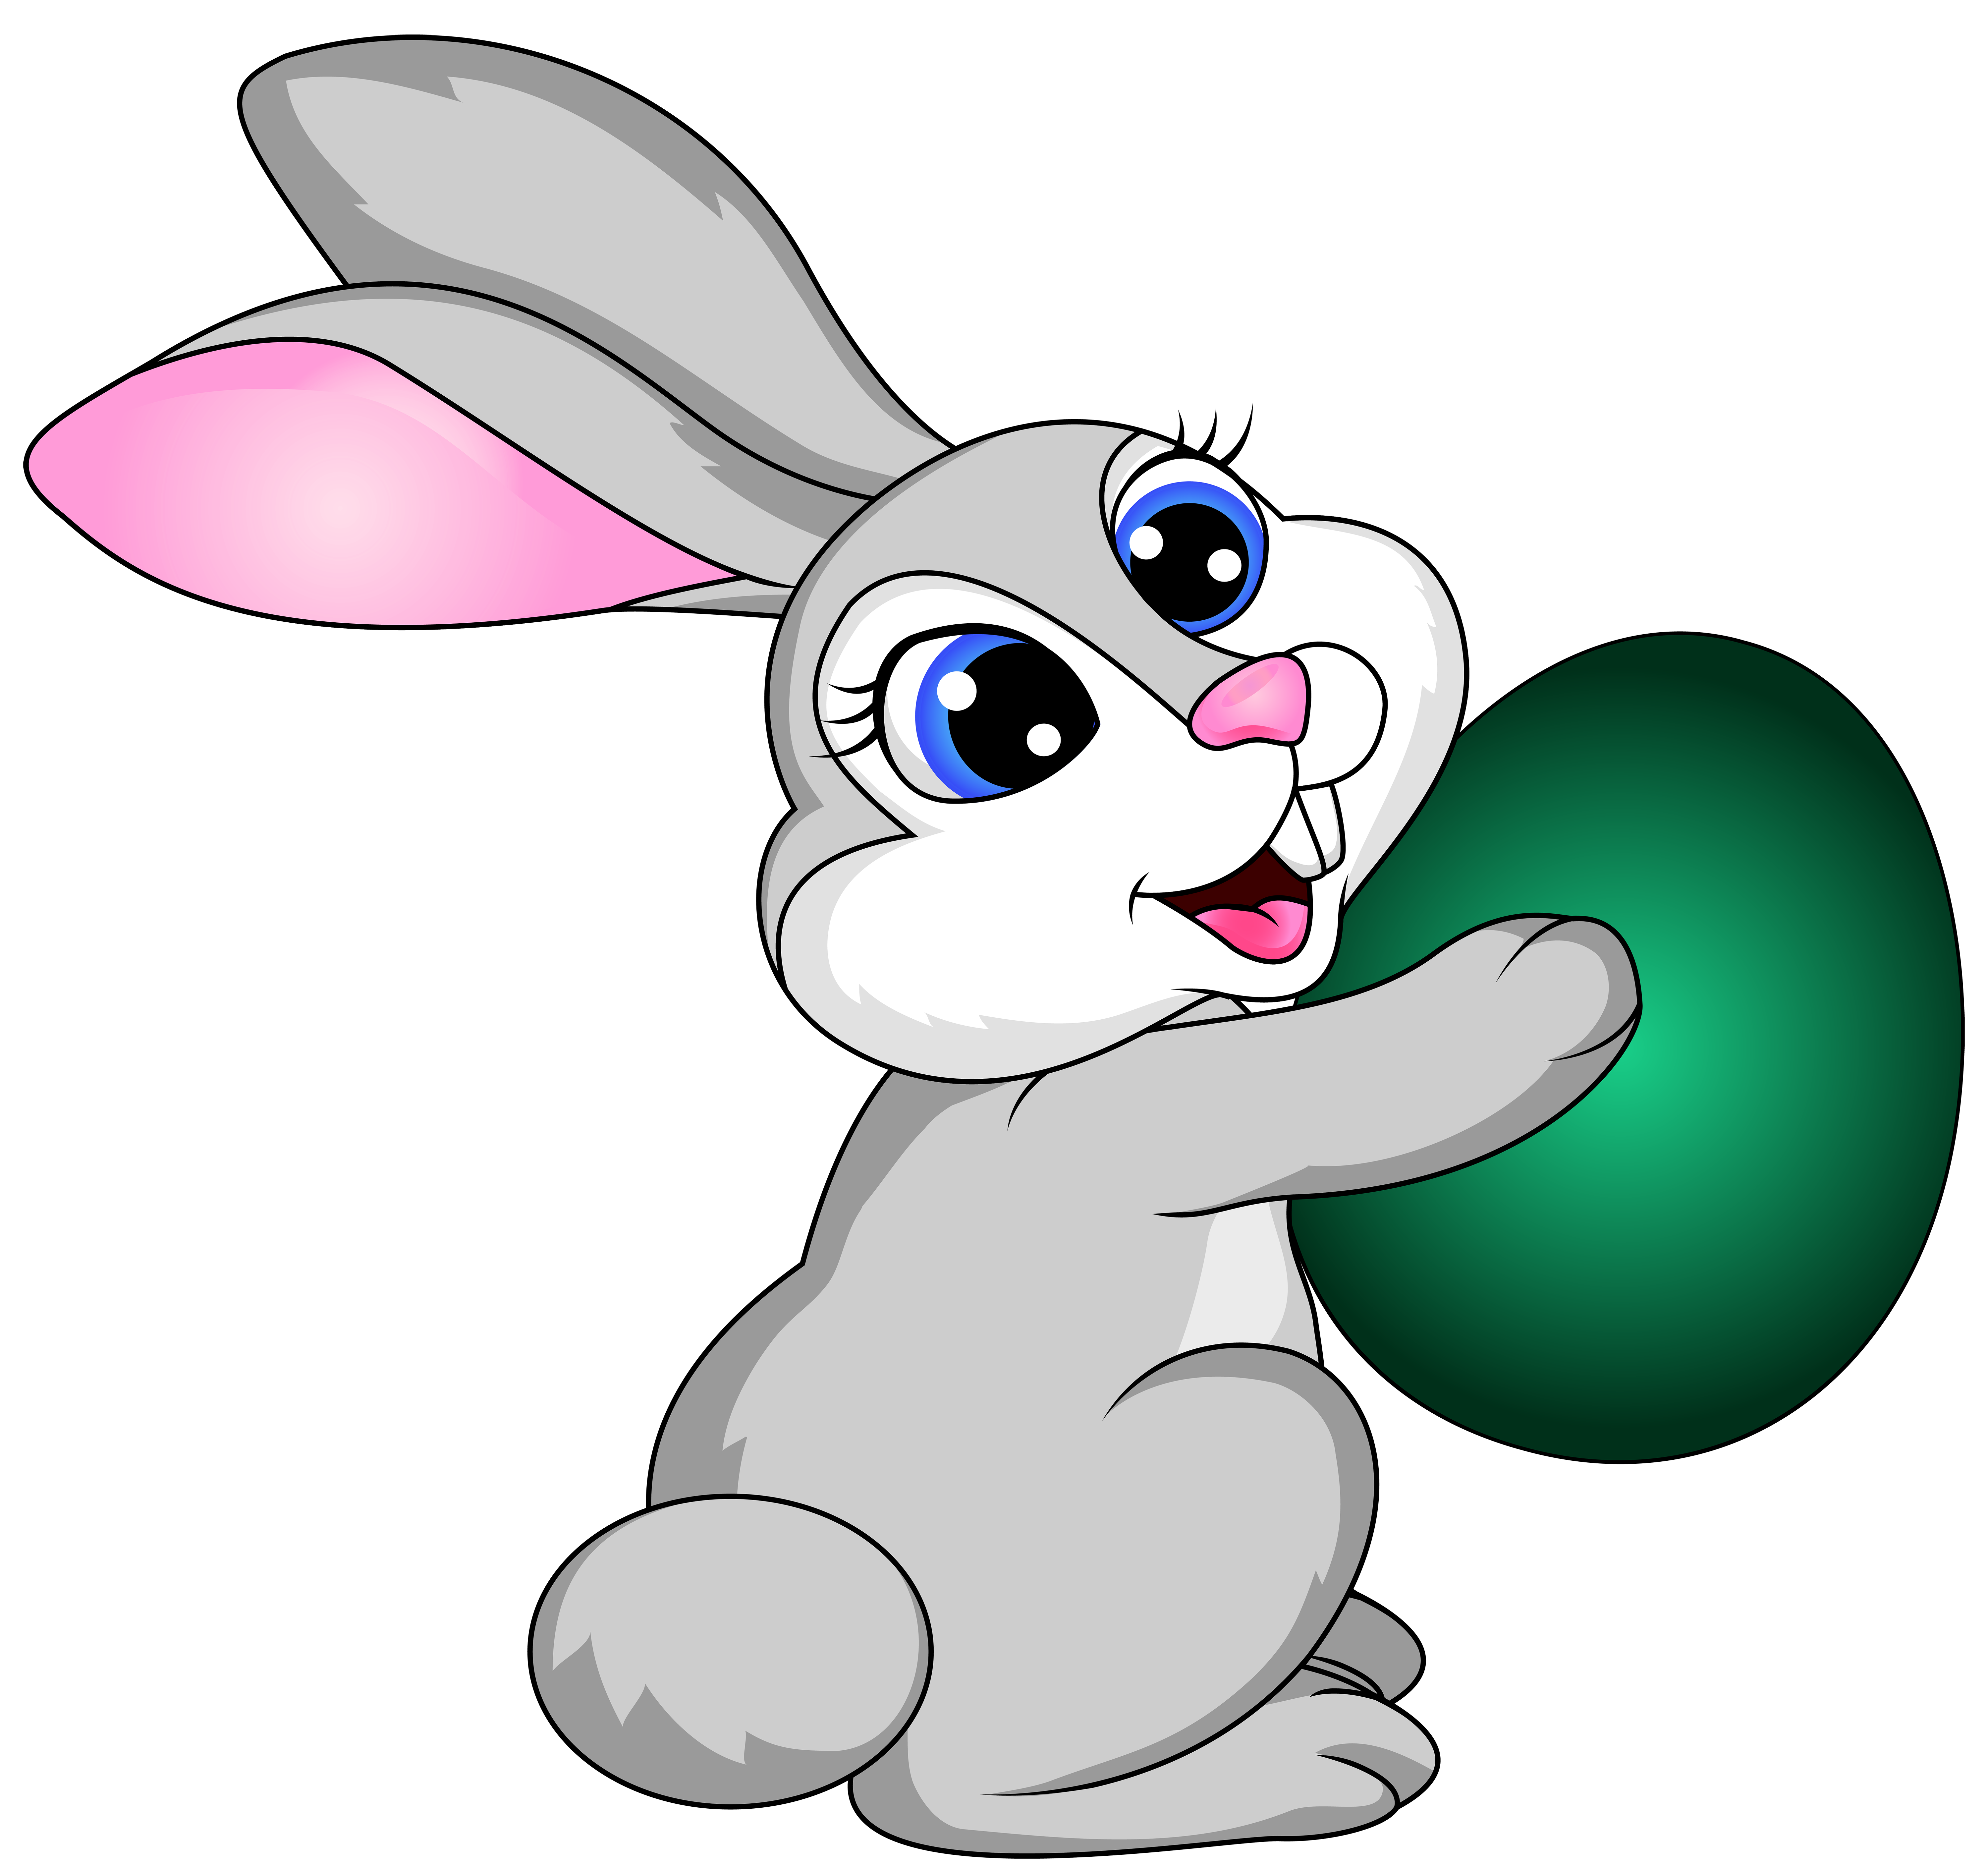 Easter Bunny Transparent Background PNG Images